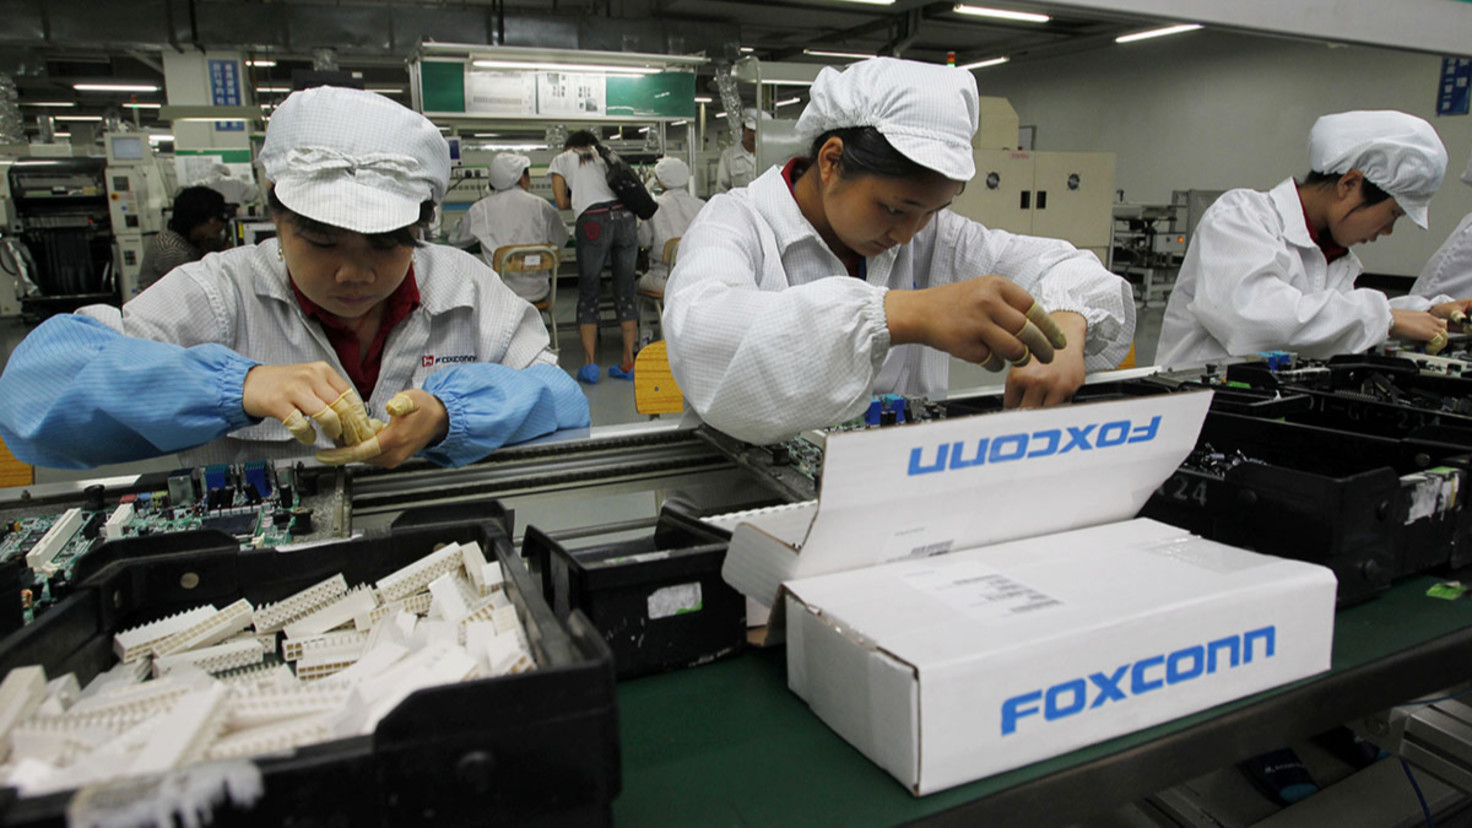 Apple Considers Shifting 15-30% of Production Capacity out of China